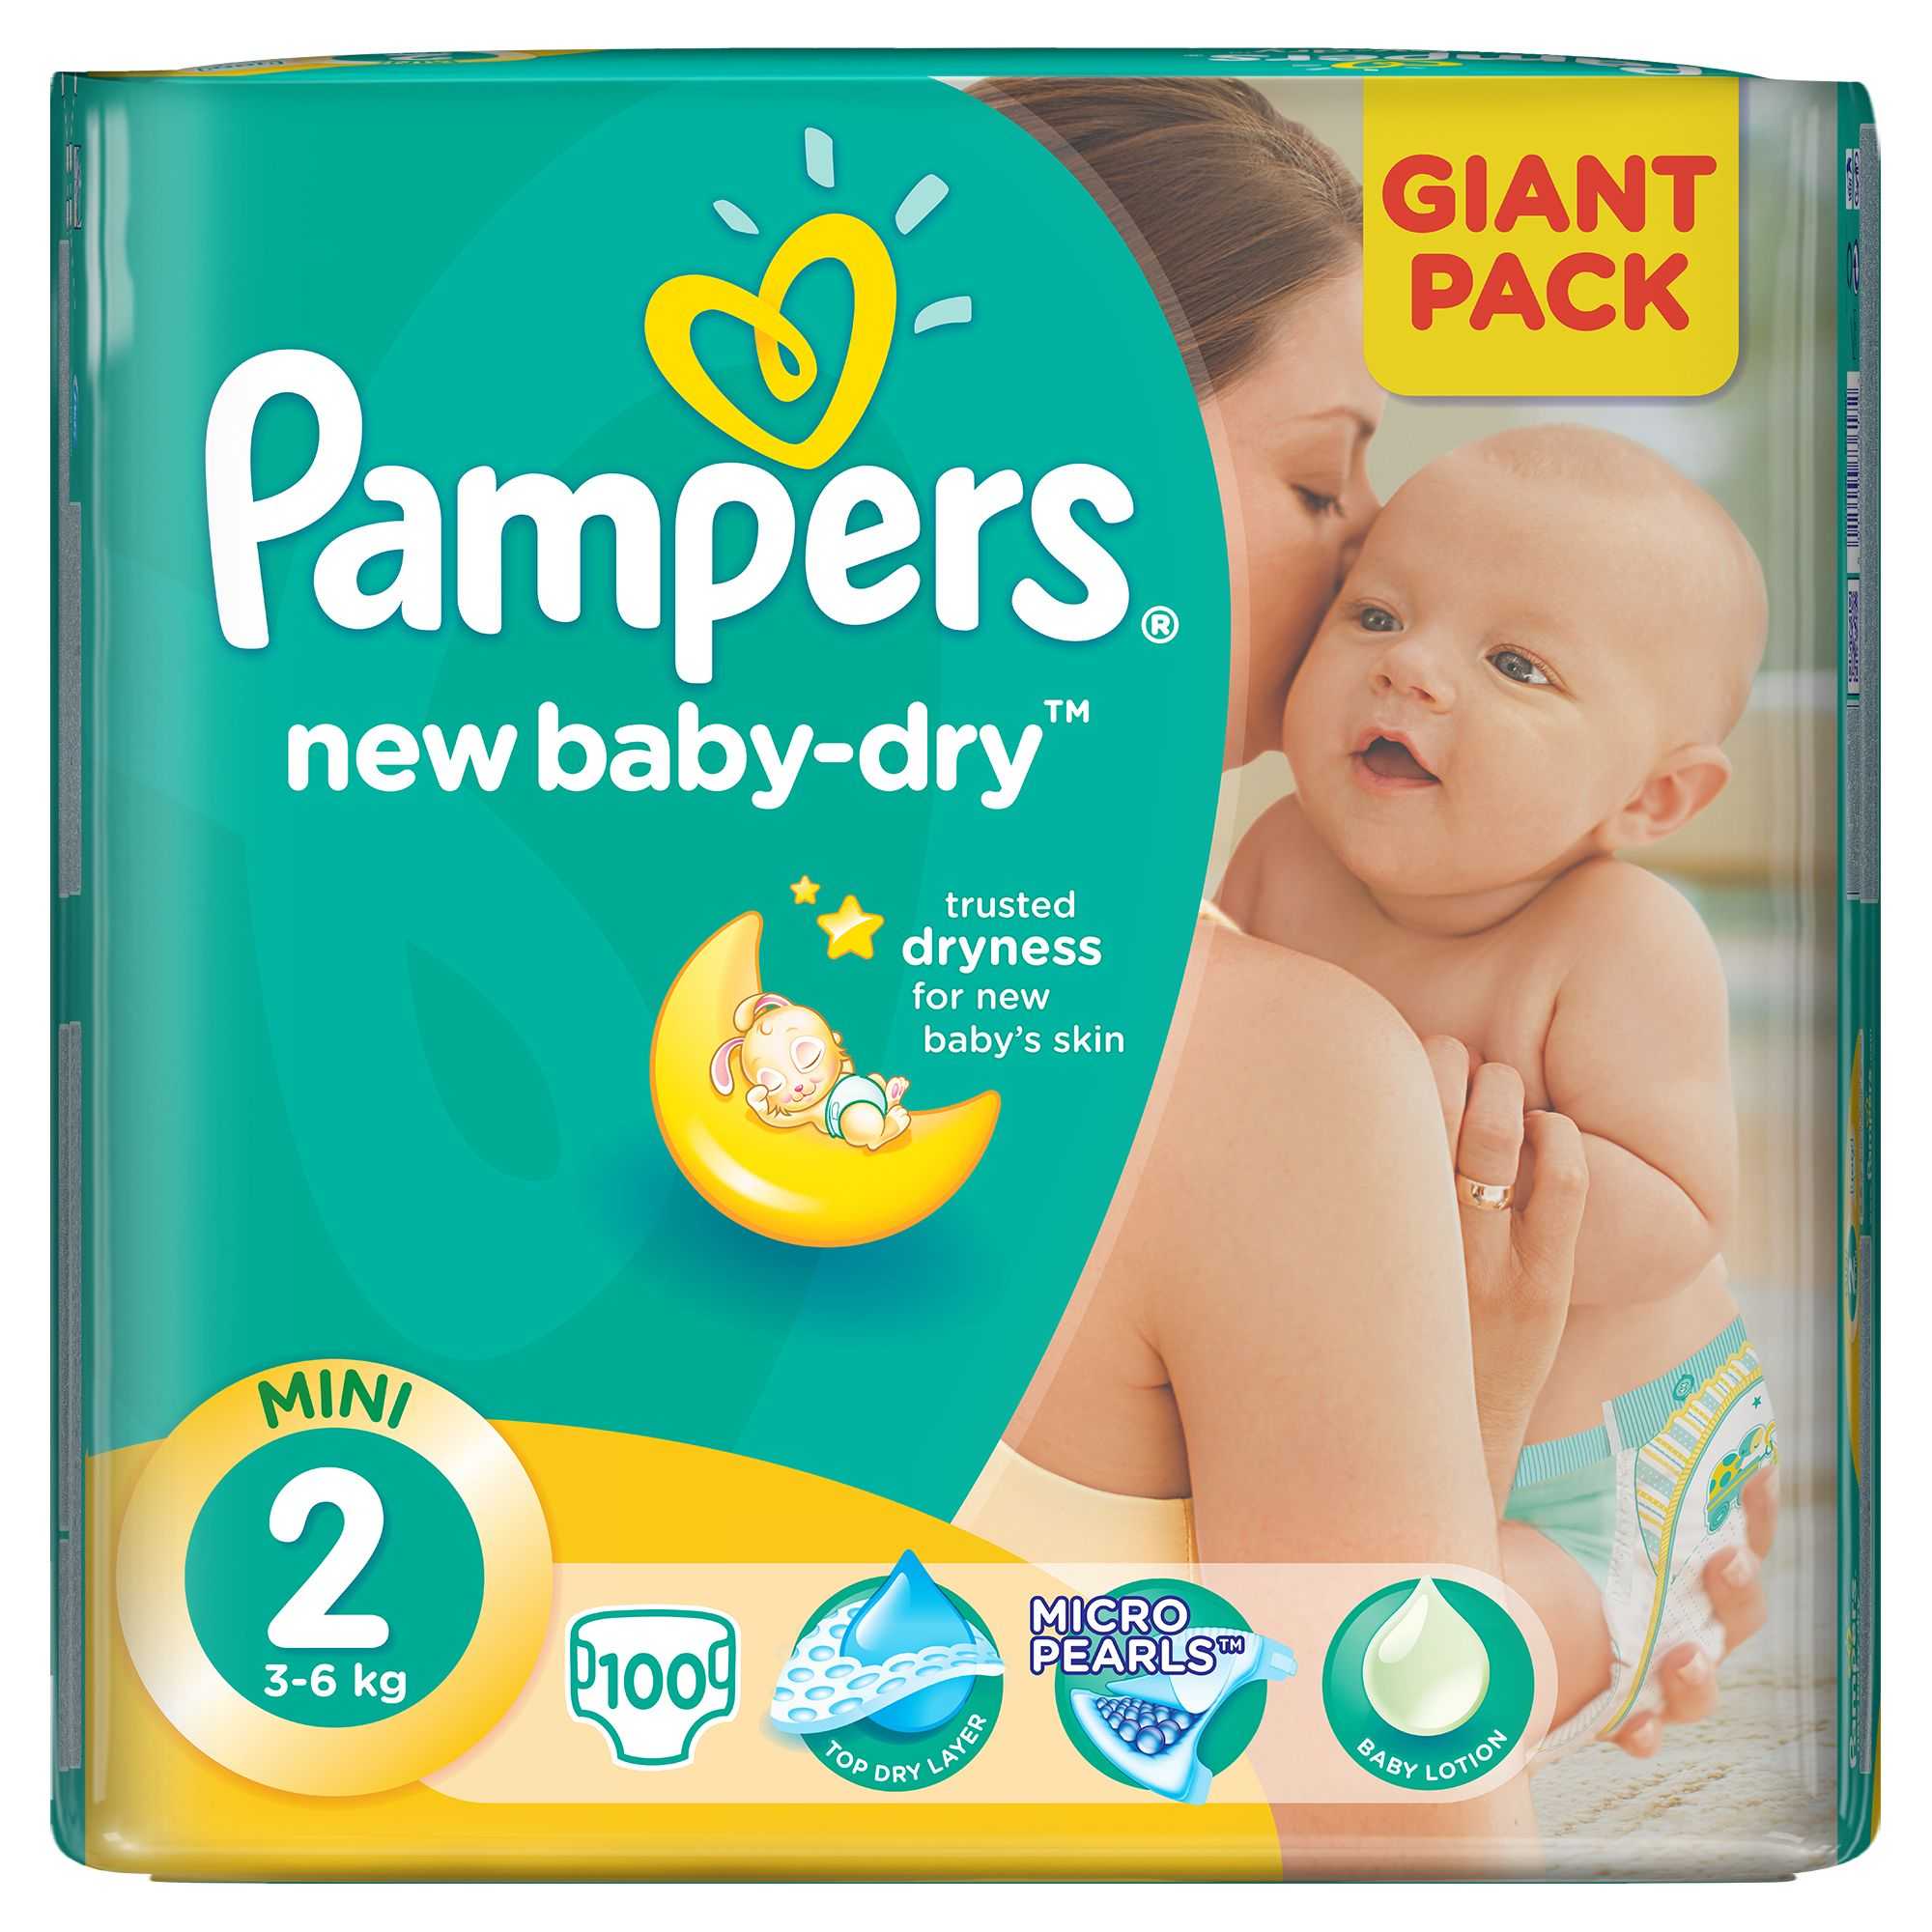 scutece pampers new baby-dry 2 mini, 100 buc, 3 - 6 kg